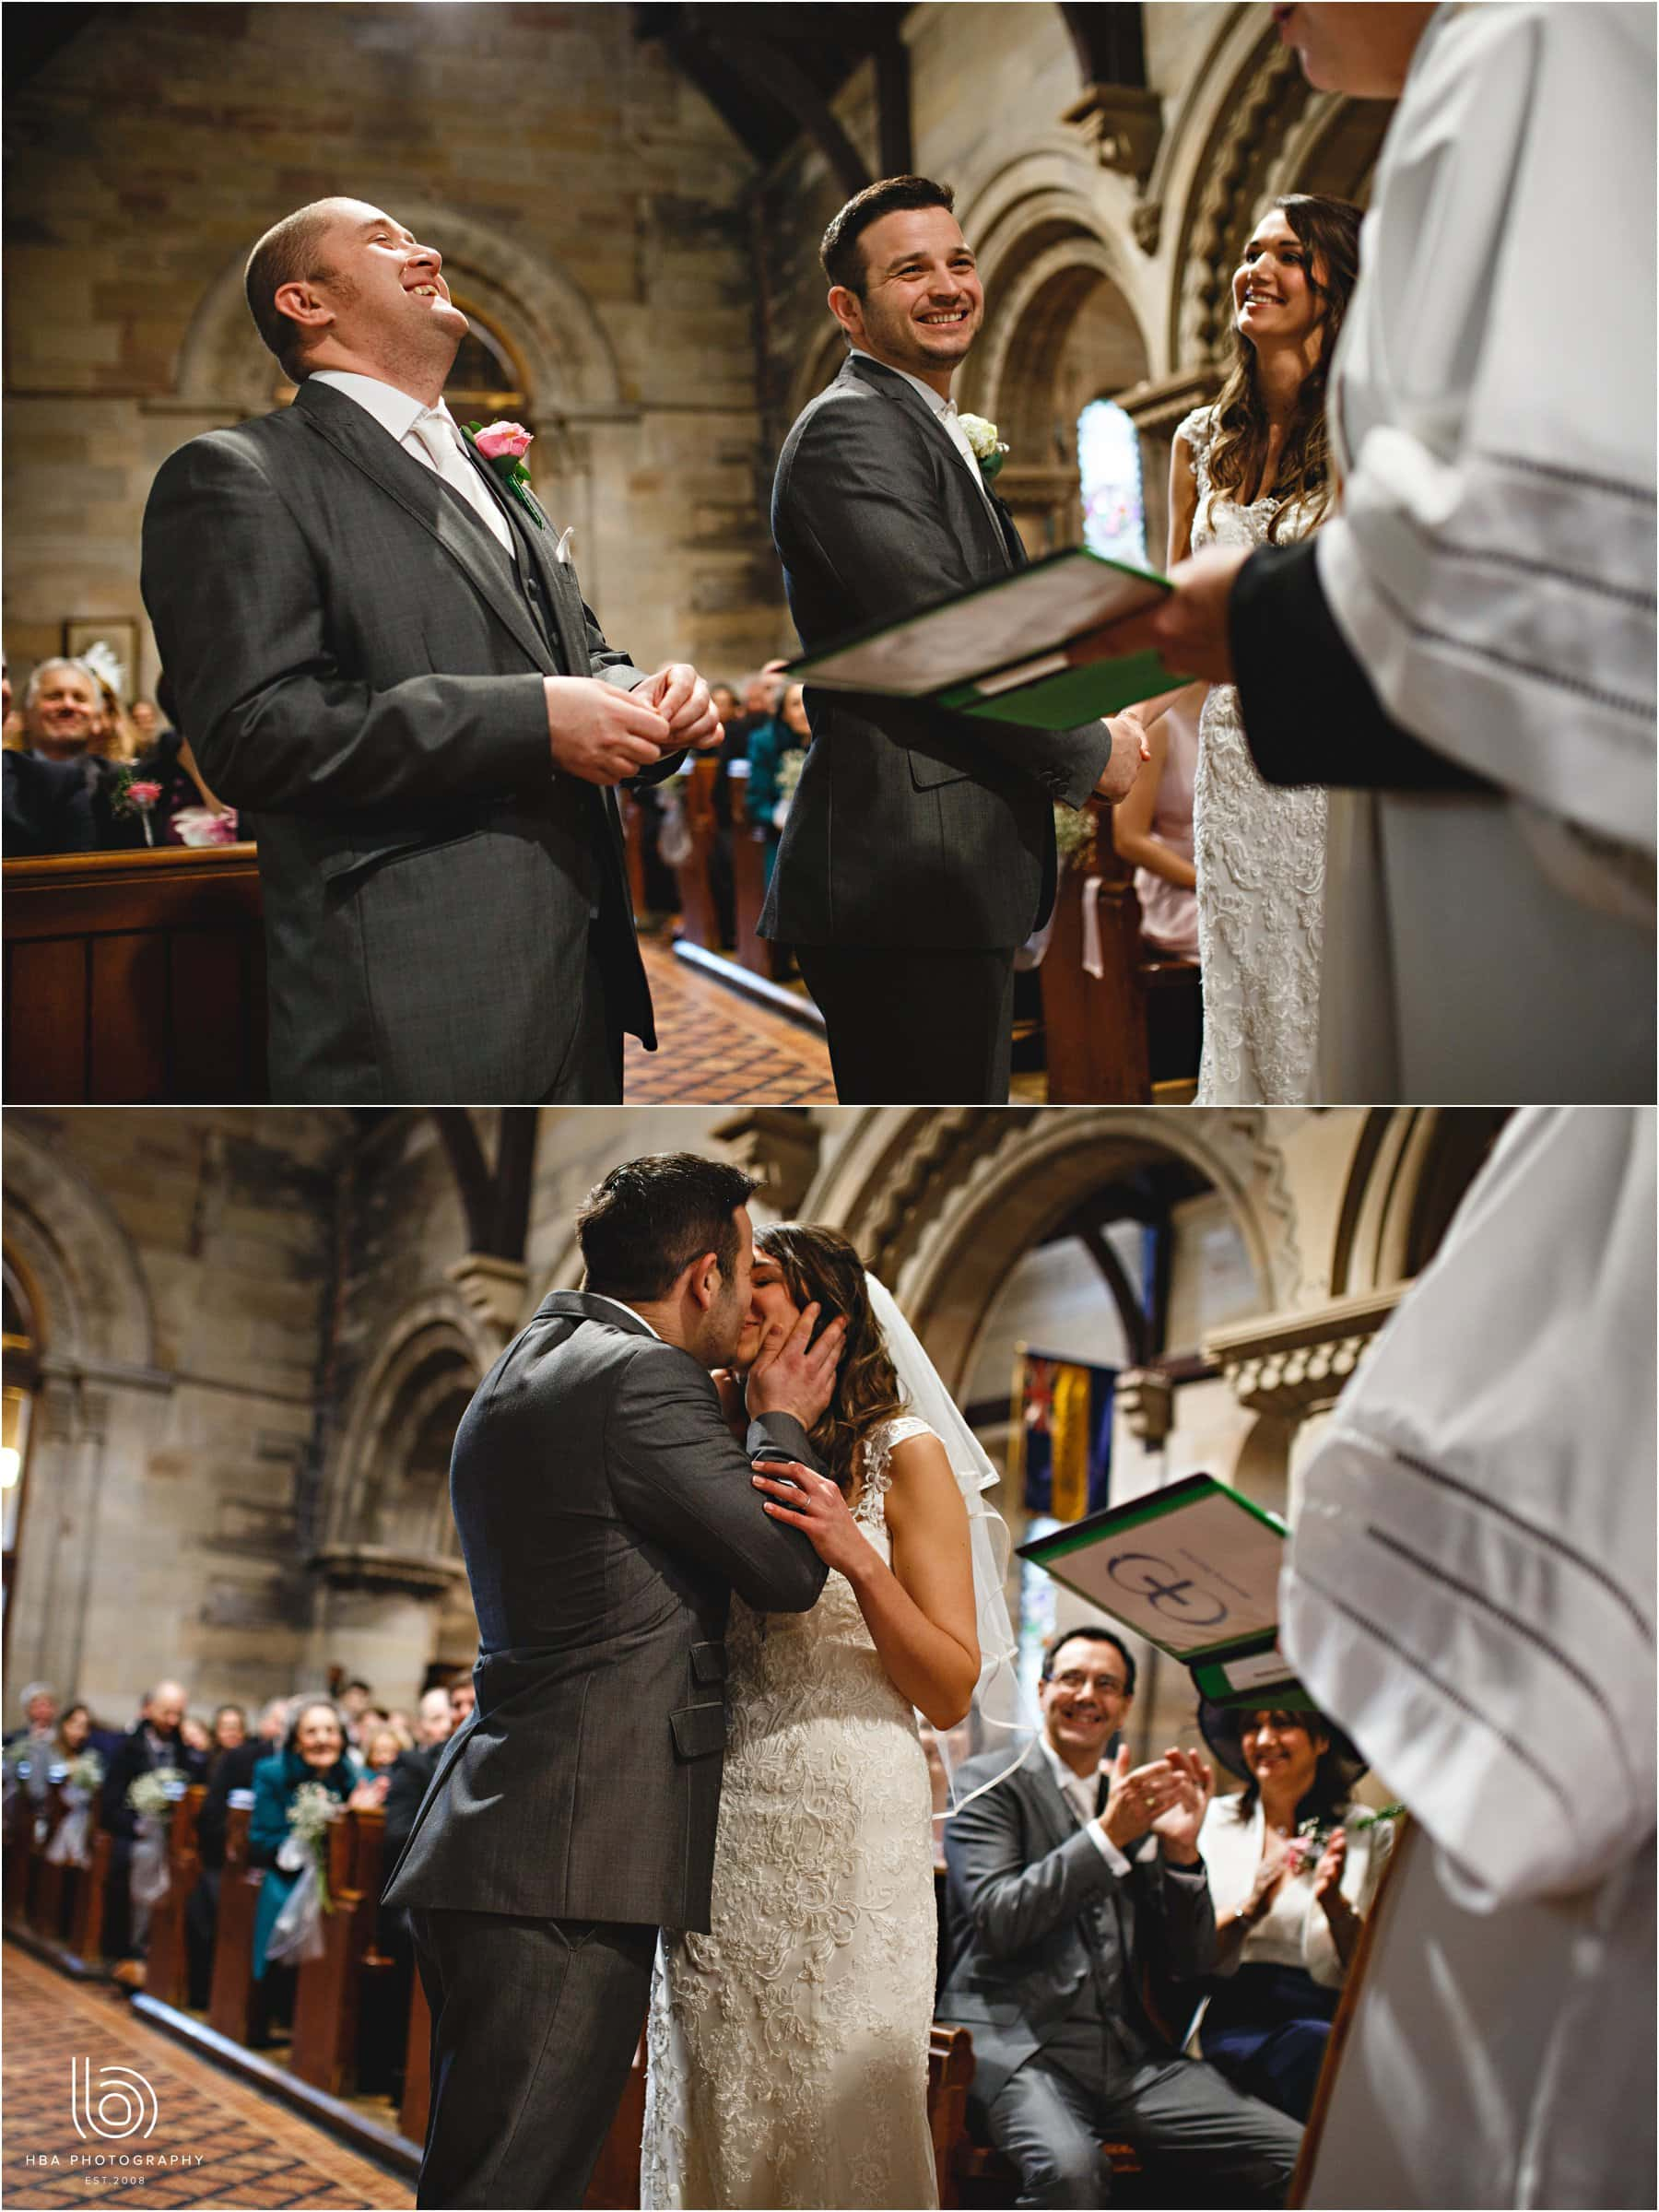 the wedding ceremony and first kiss